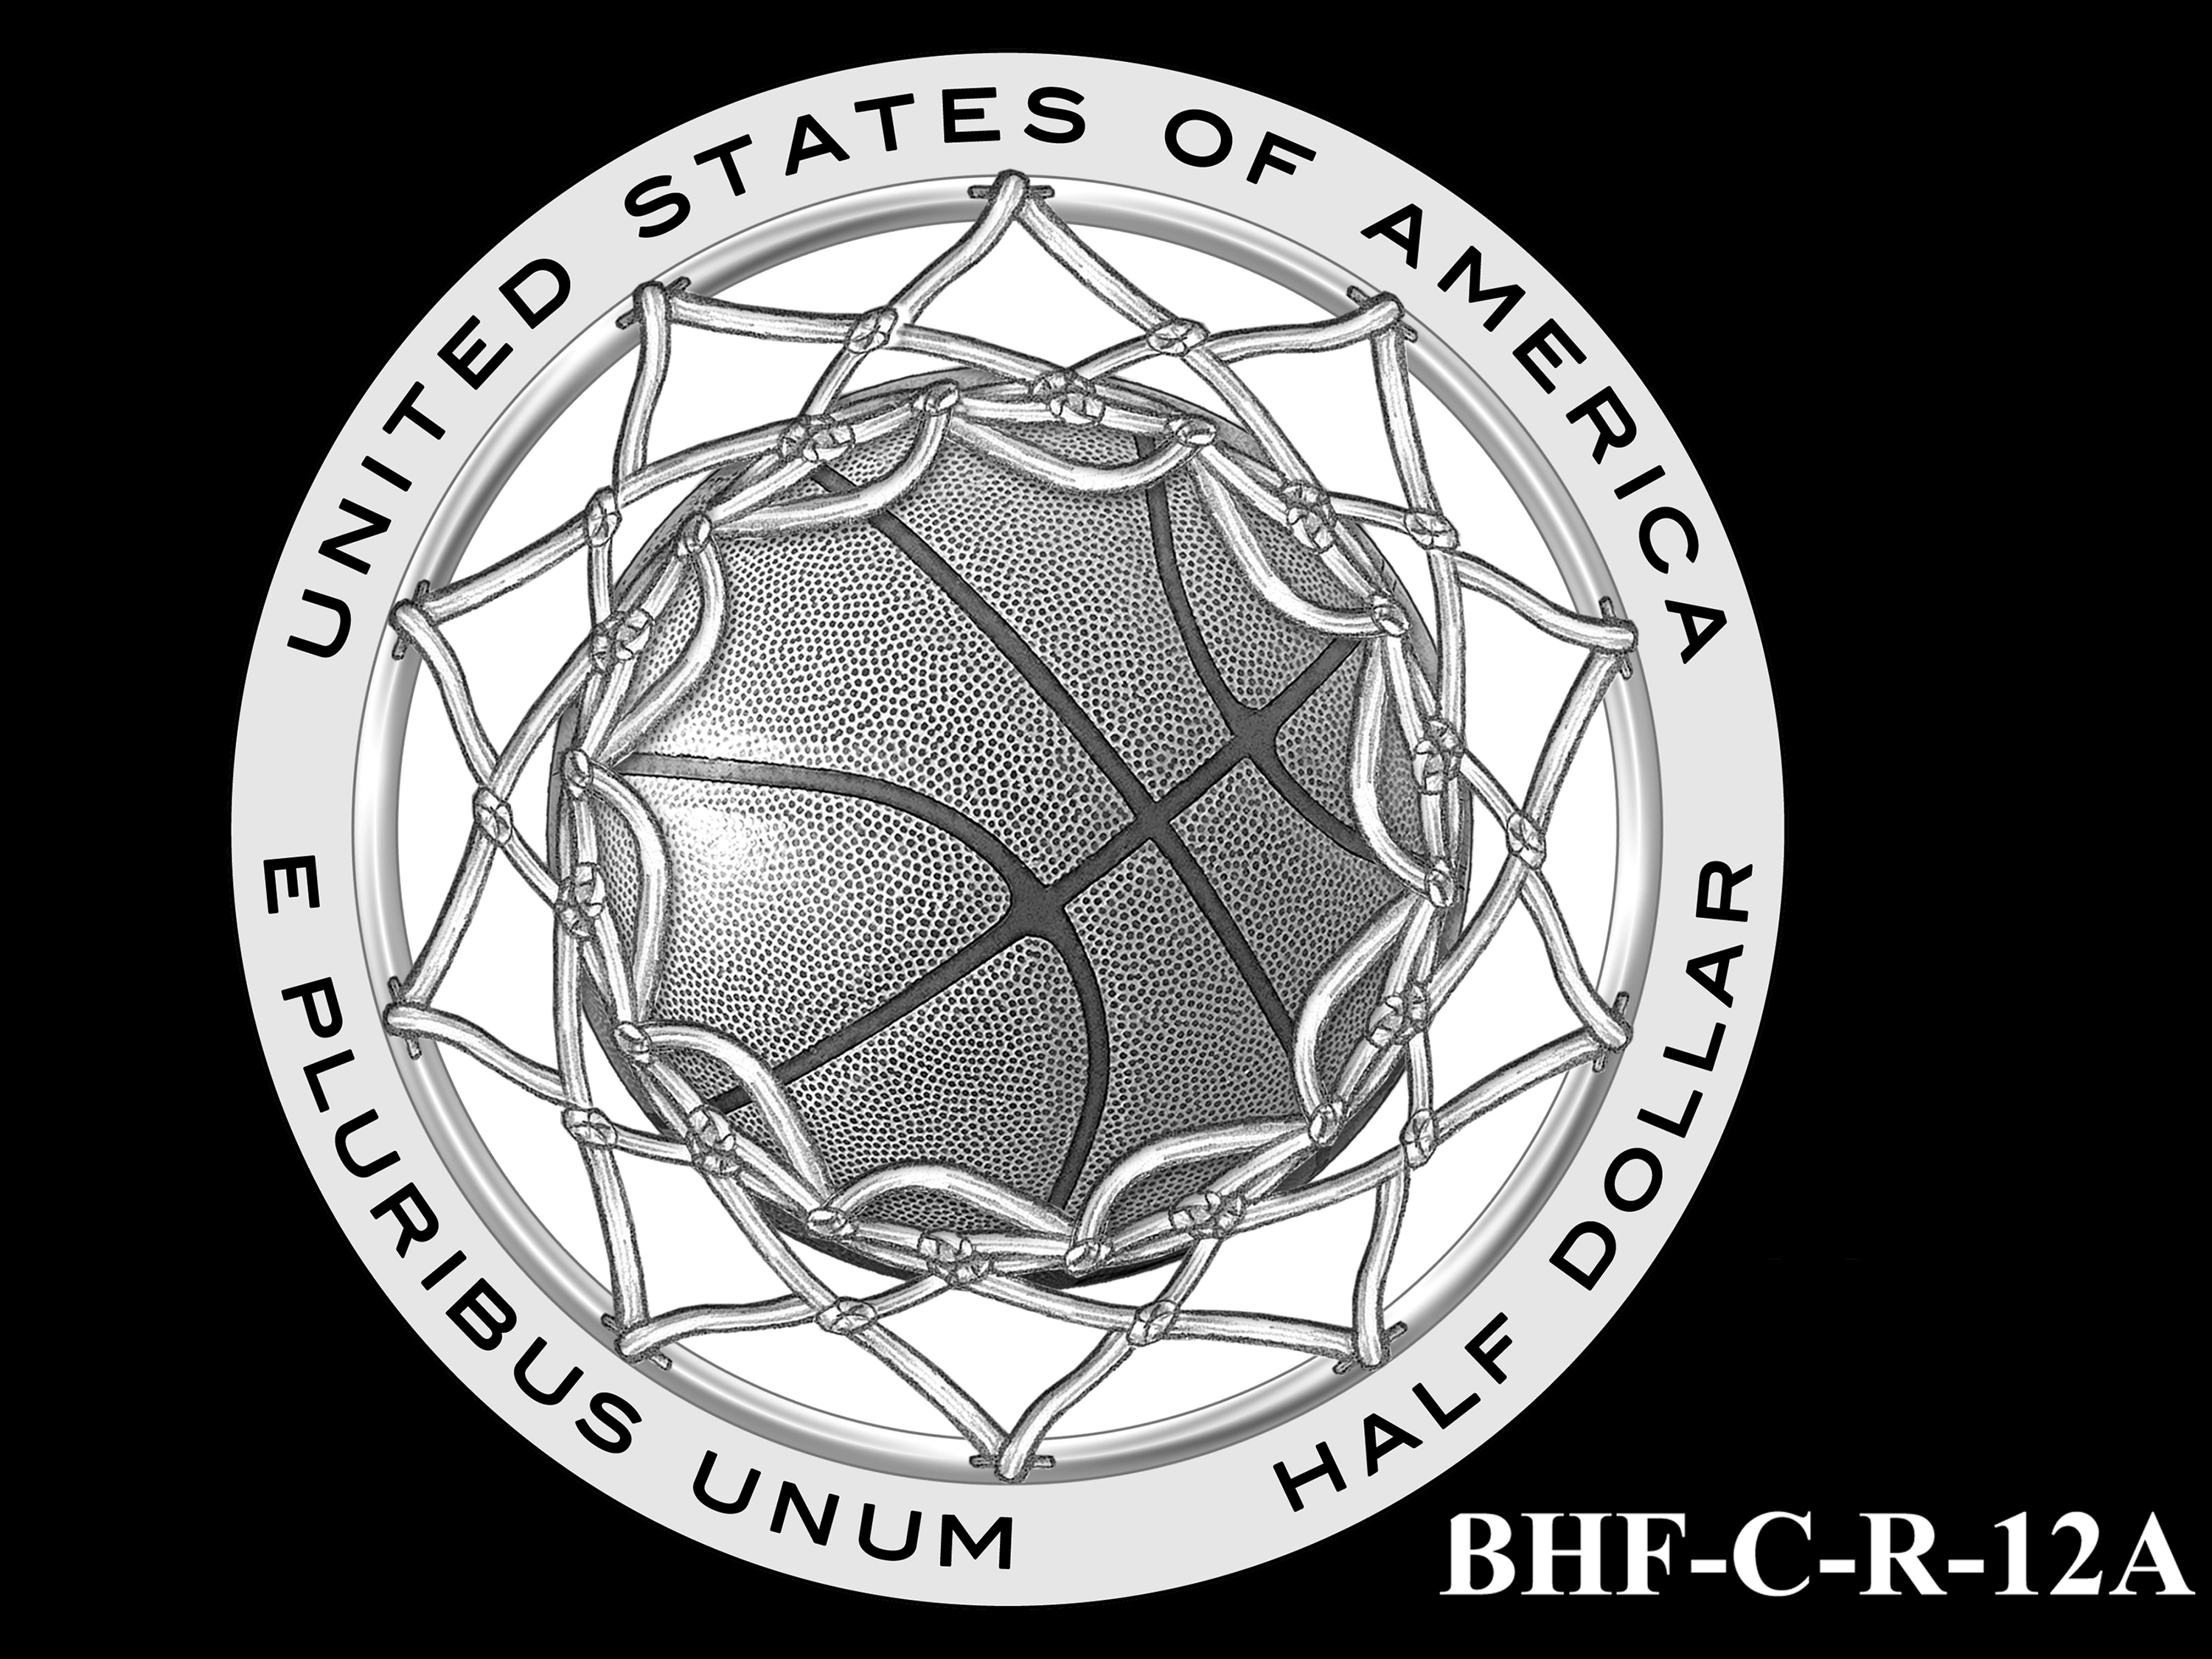 BHF-C-R-12A -- 2020 Basketball Hall of Fame Commemorative Coin Program - Clad Reverse